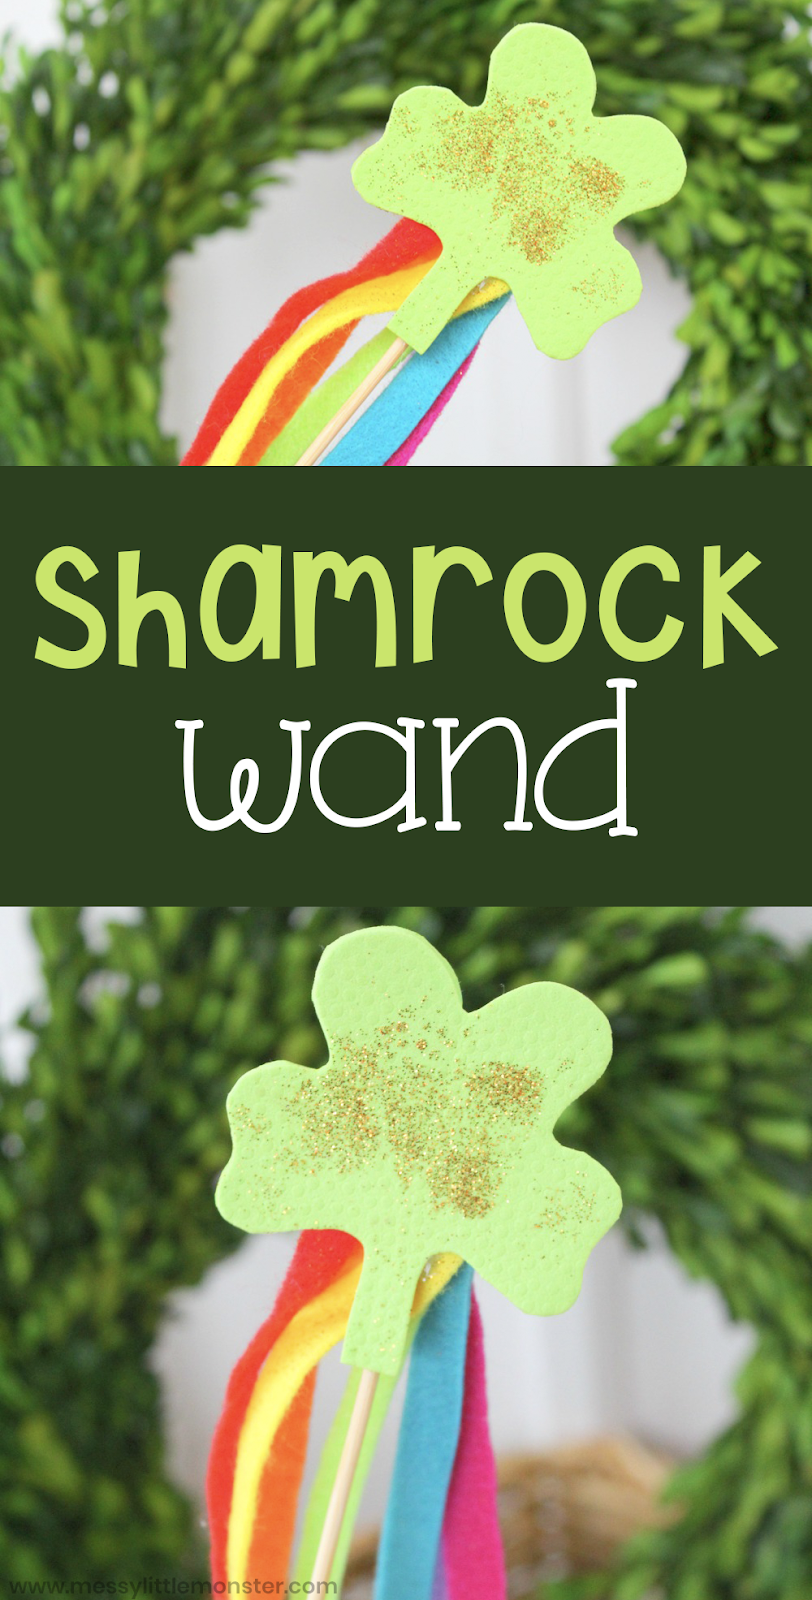 This shamrock wand is such a fun St Patrick's Day craft for kids. Toddlers and preschoolers will love making and playing with this easy shamrock craft.